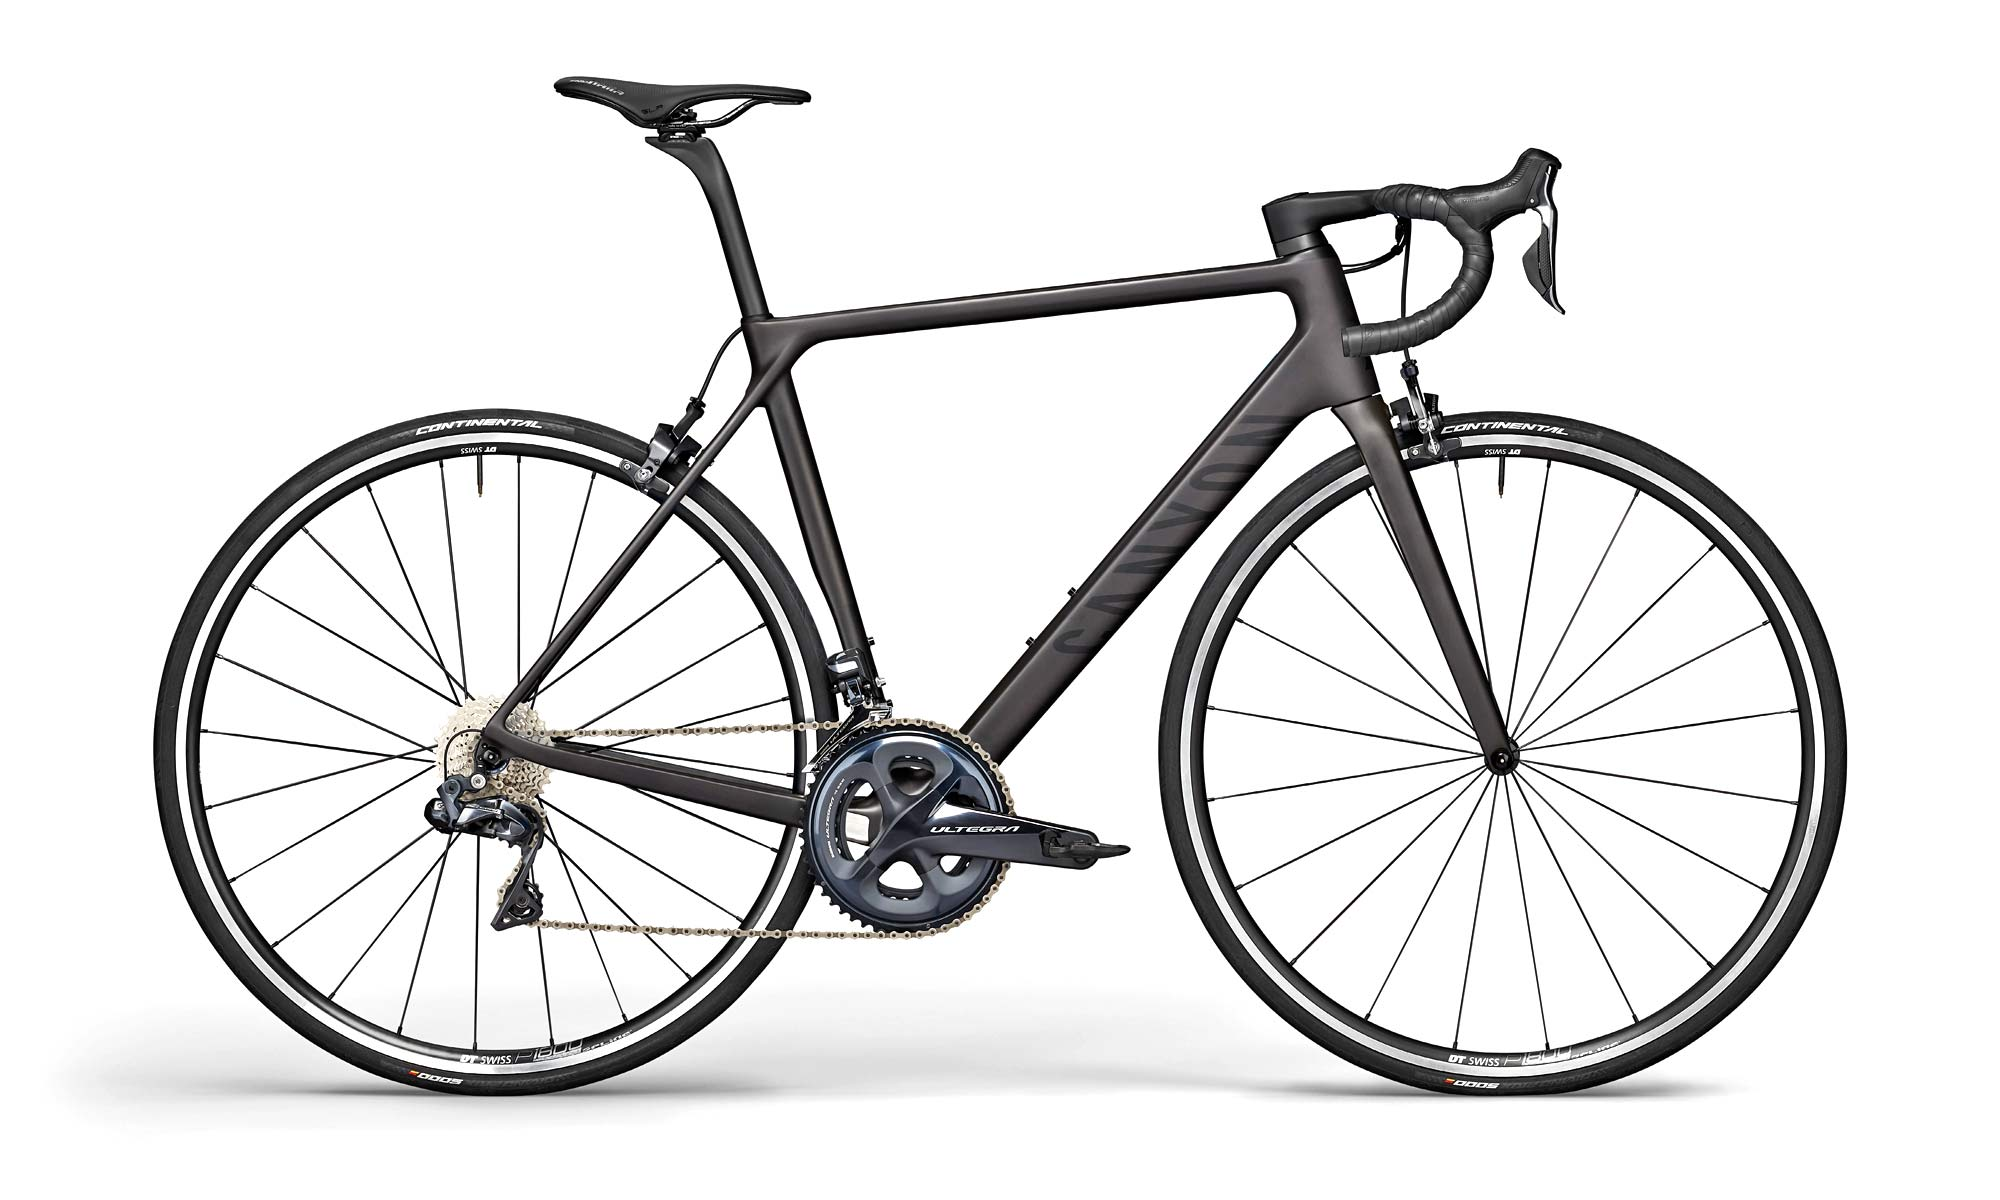 2021 Canyon Ultimate CF SL rim brake road bike, SL 8 Di2